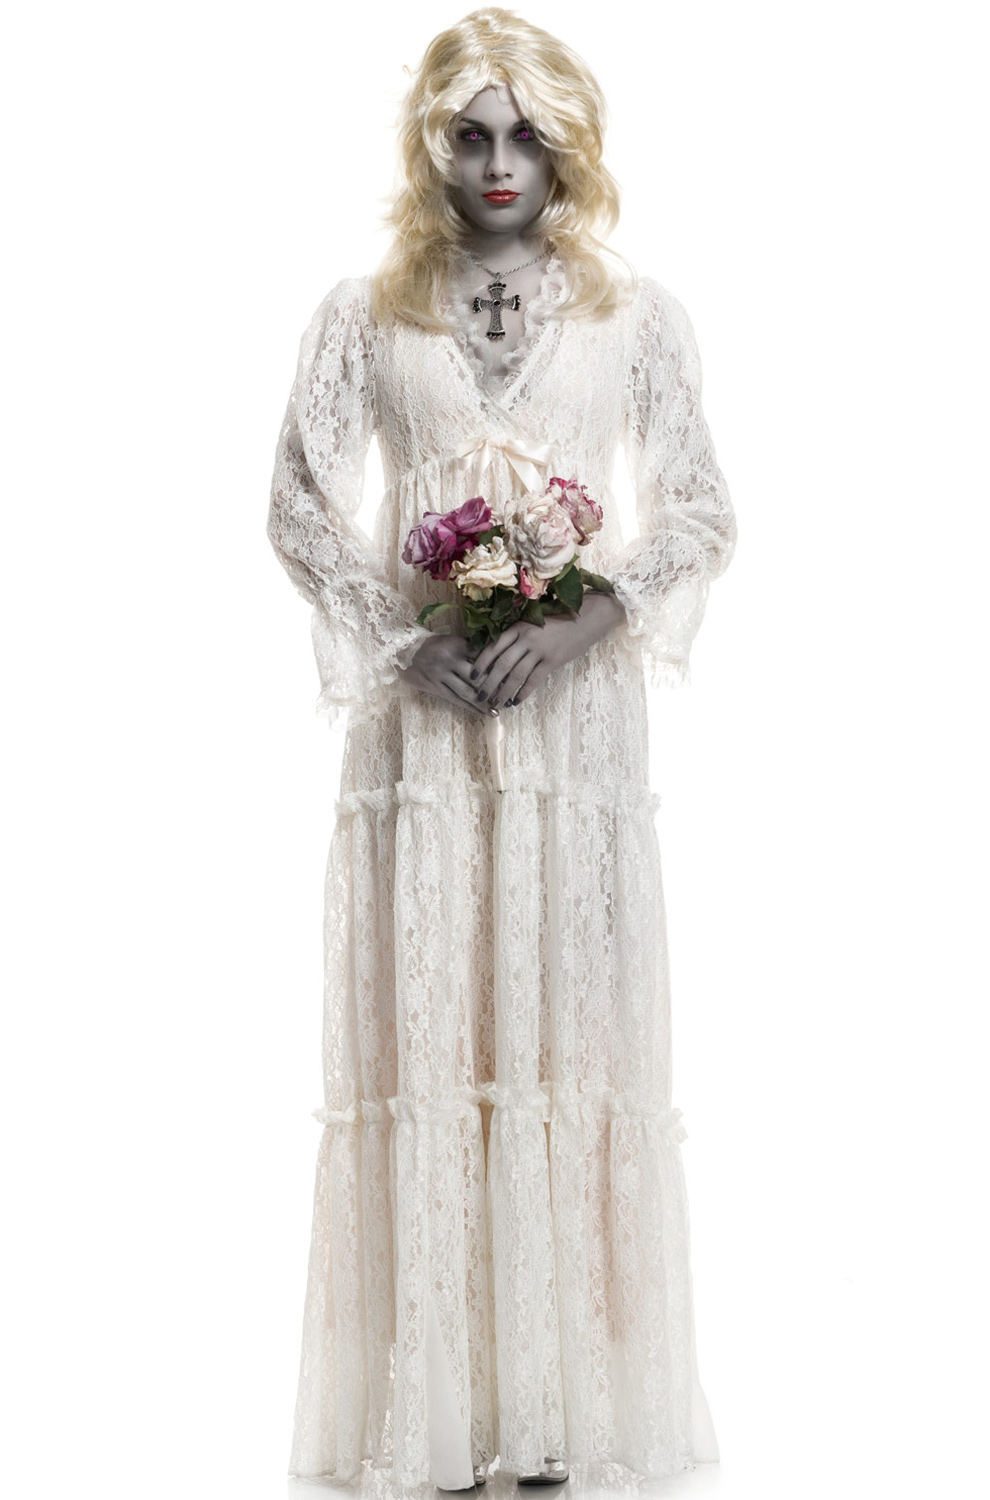 Lost soul ghost wedding gown adult costume ebay for Wedding dress costume for adults